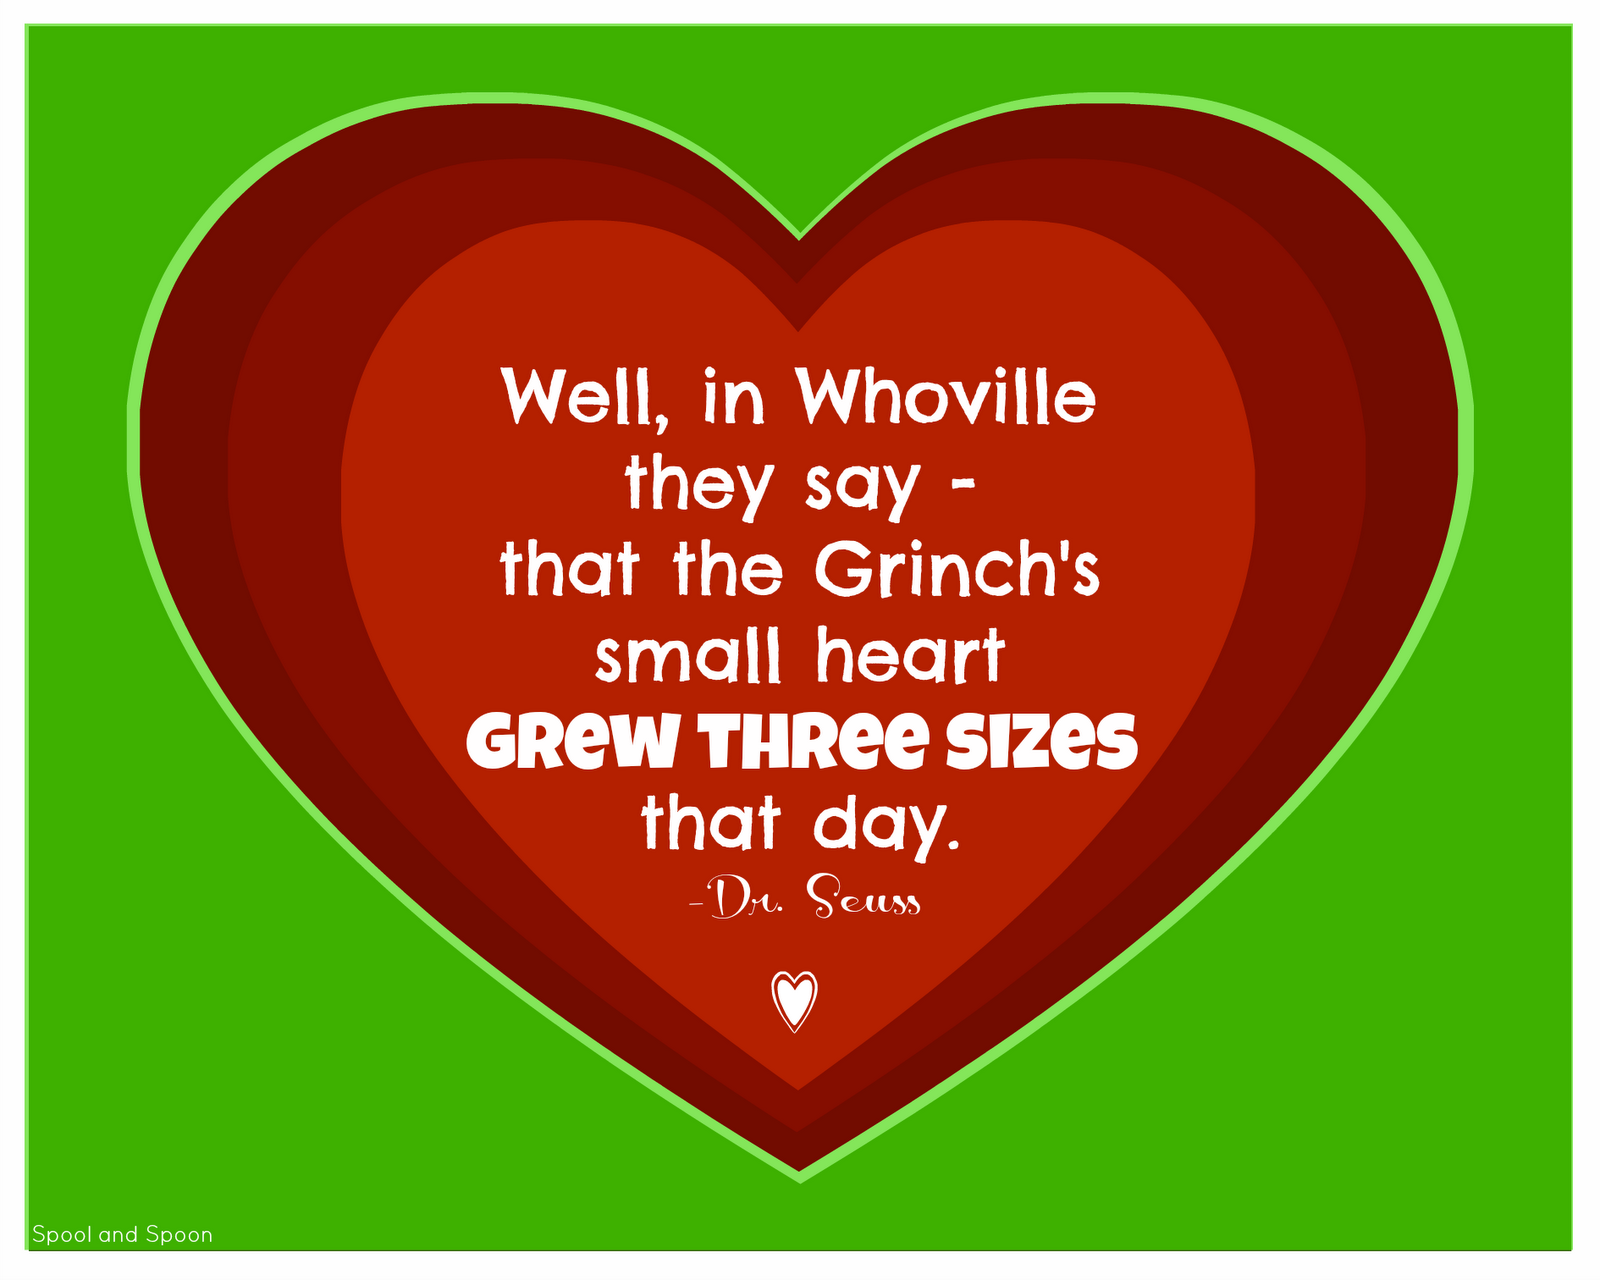 Well In Whoville They Say That The Grinchs Small Heart Grew